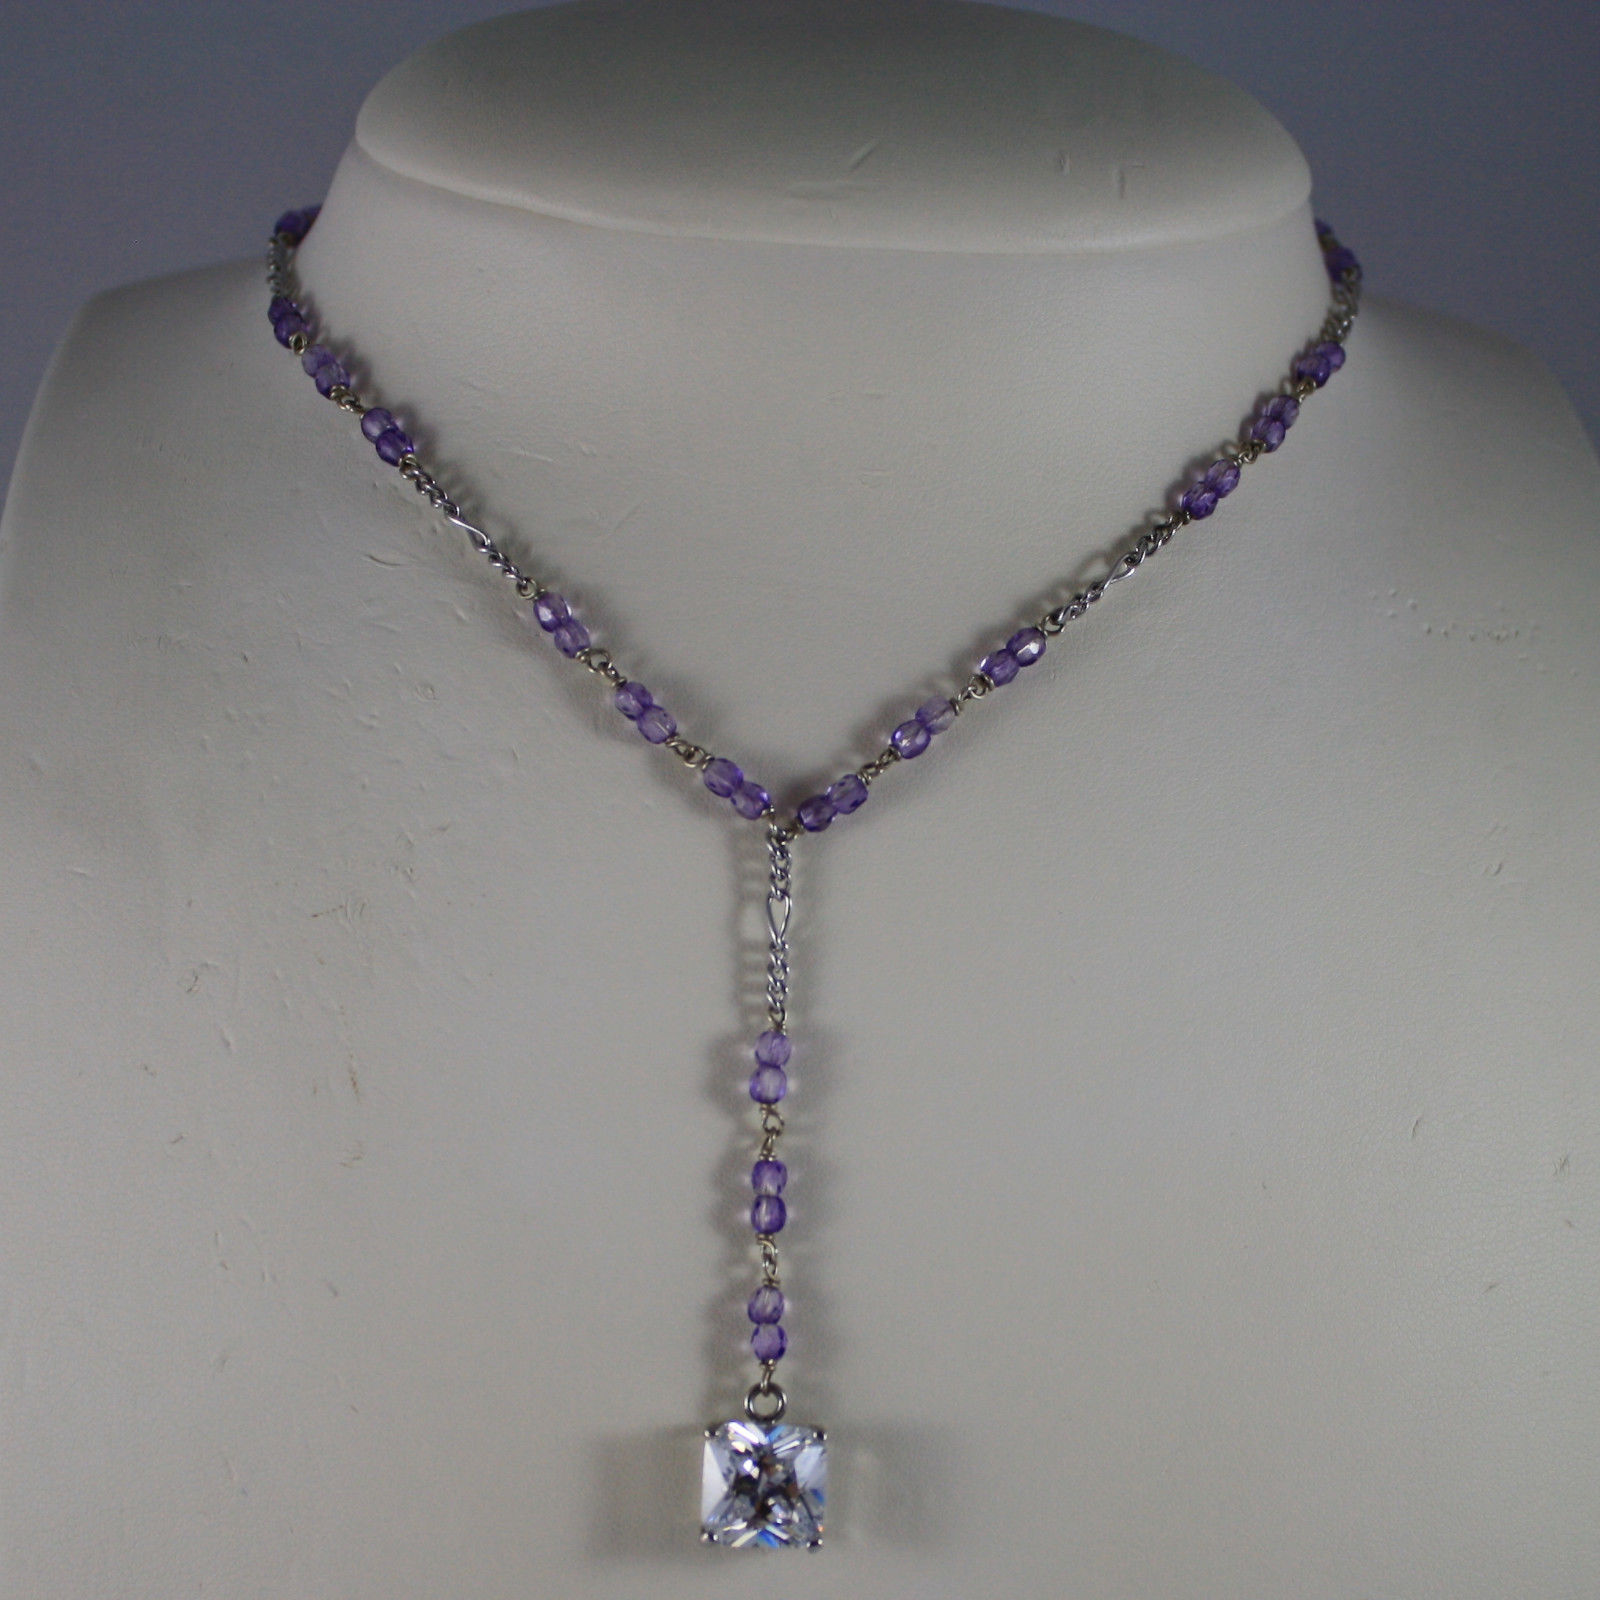 .925 SILVER RHODIUM NECKLACE WITH PURPLE CRYSTALS, TRANSPARENT CRYSTAL PENDANT